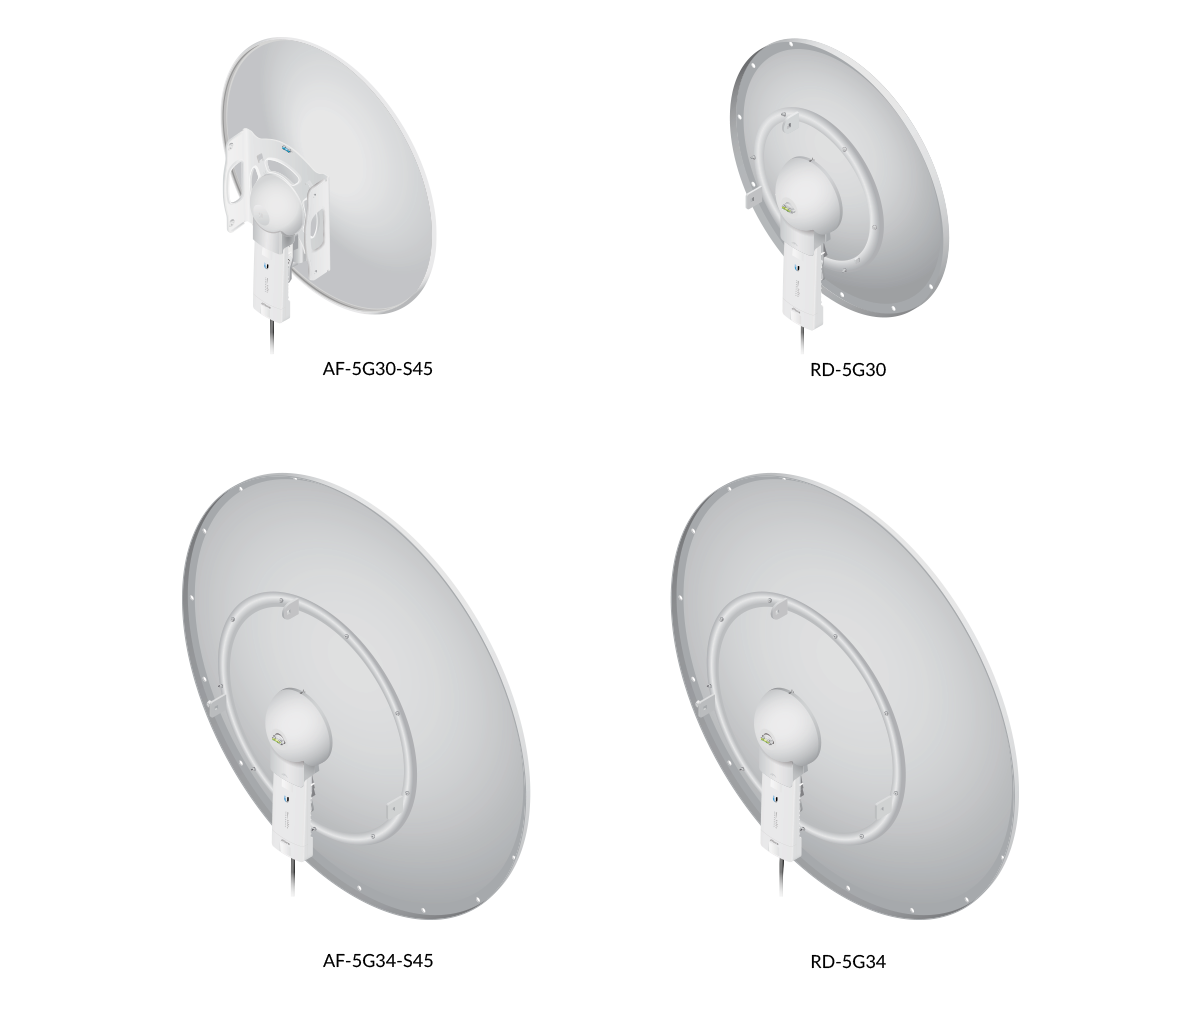 airFiber AF-5G30-S45 and AF-5G34-S45 antennas with RocketDish RD-5G30 and RD-5G34 antennas